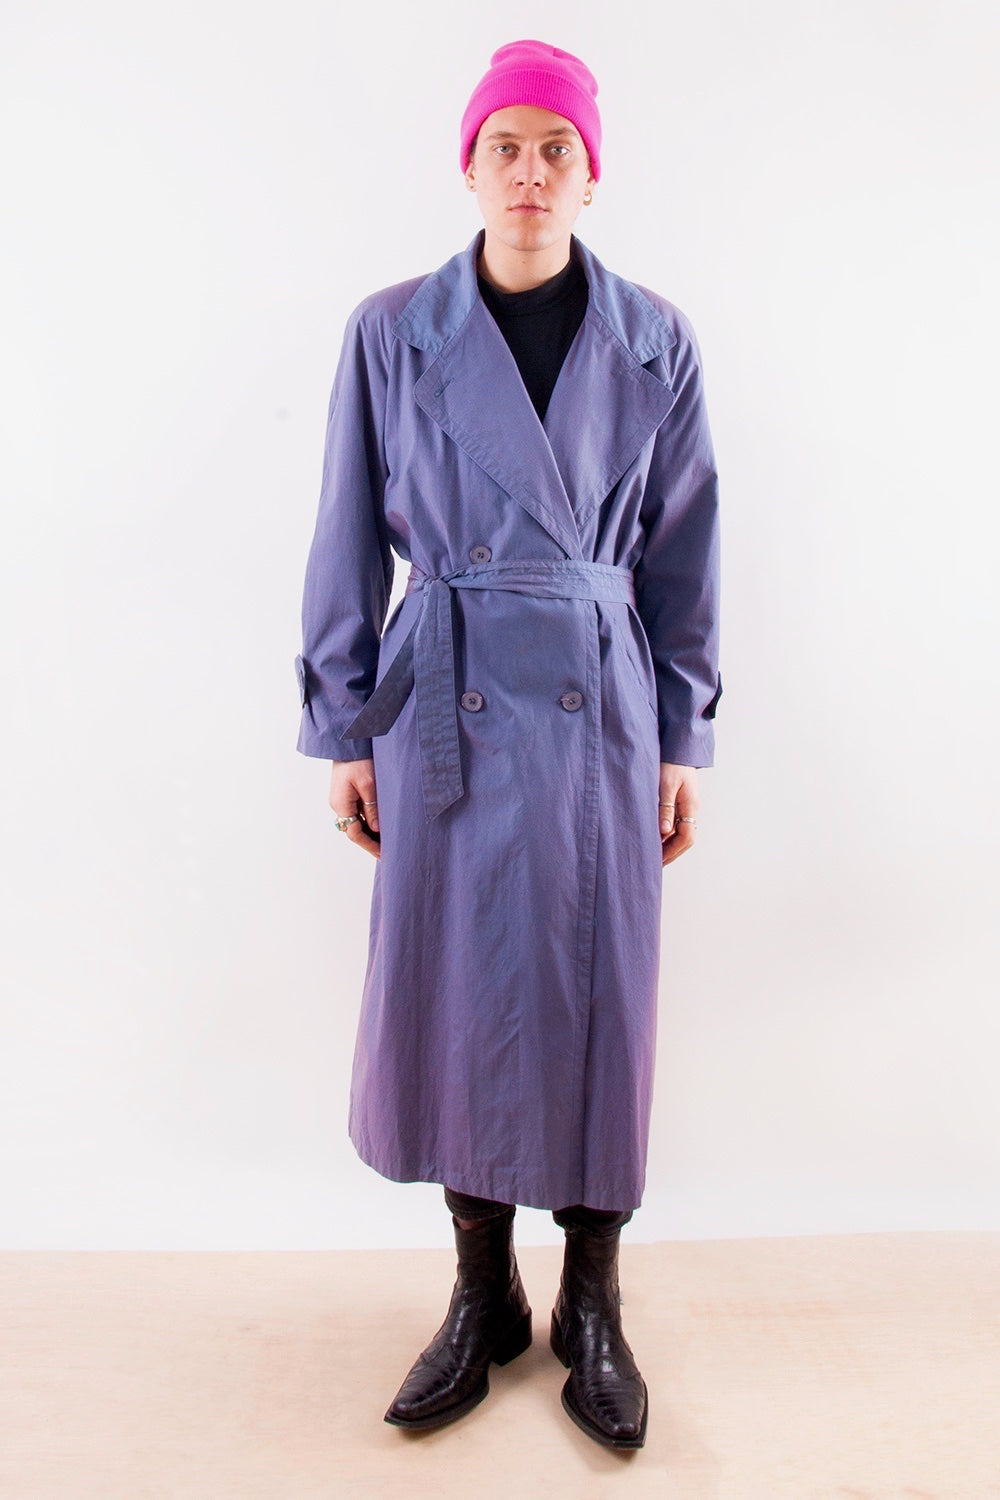 Retro Iridescent Trench Coat in Purple and Pink